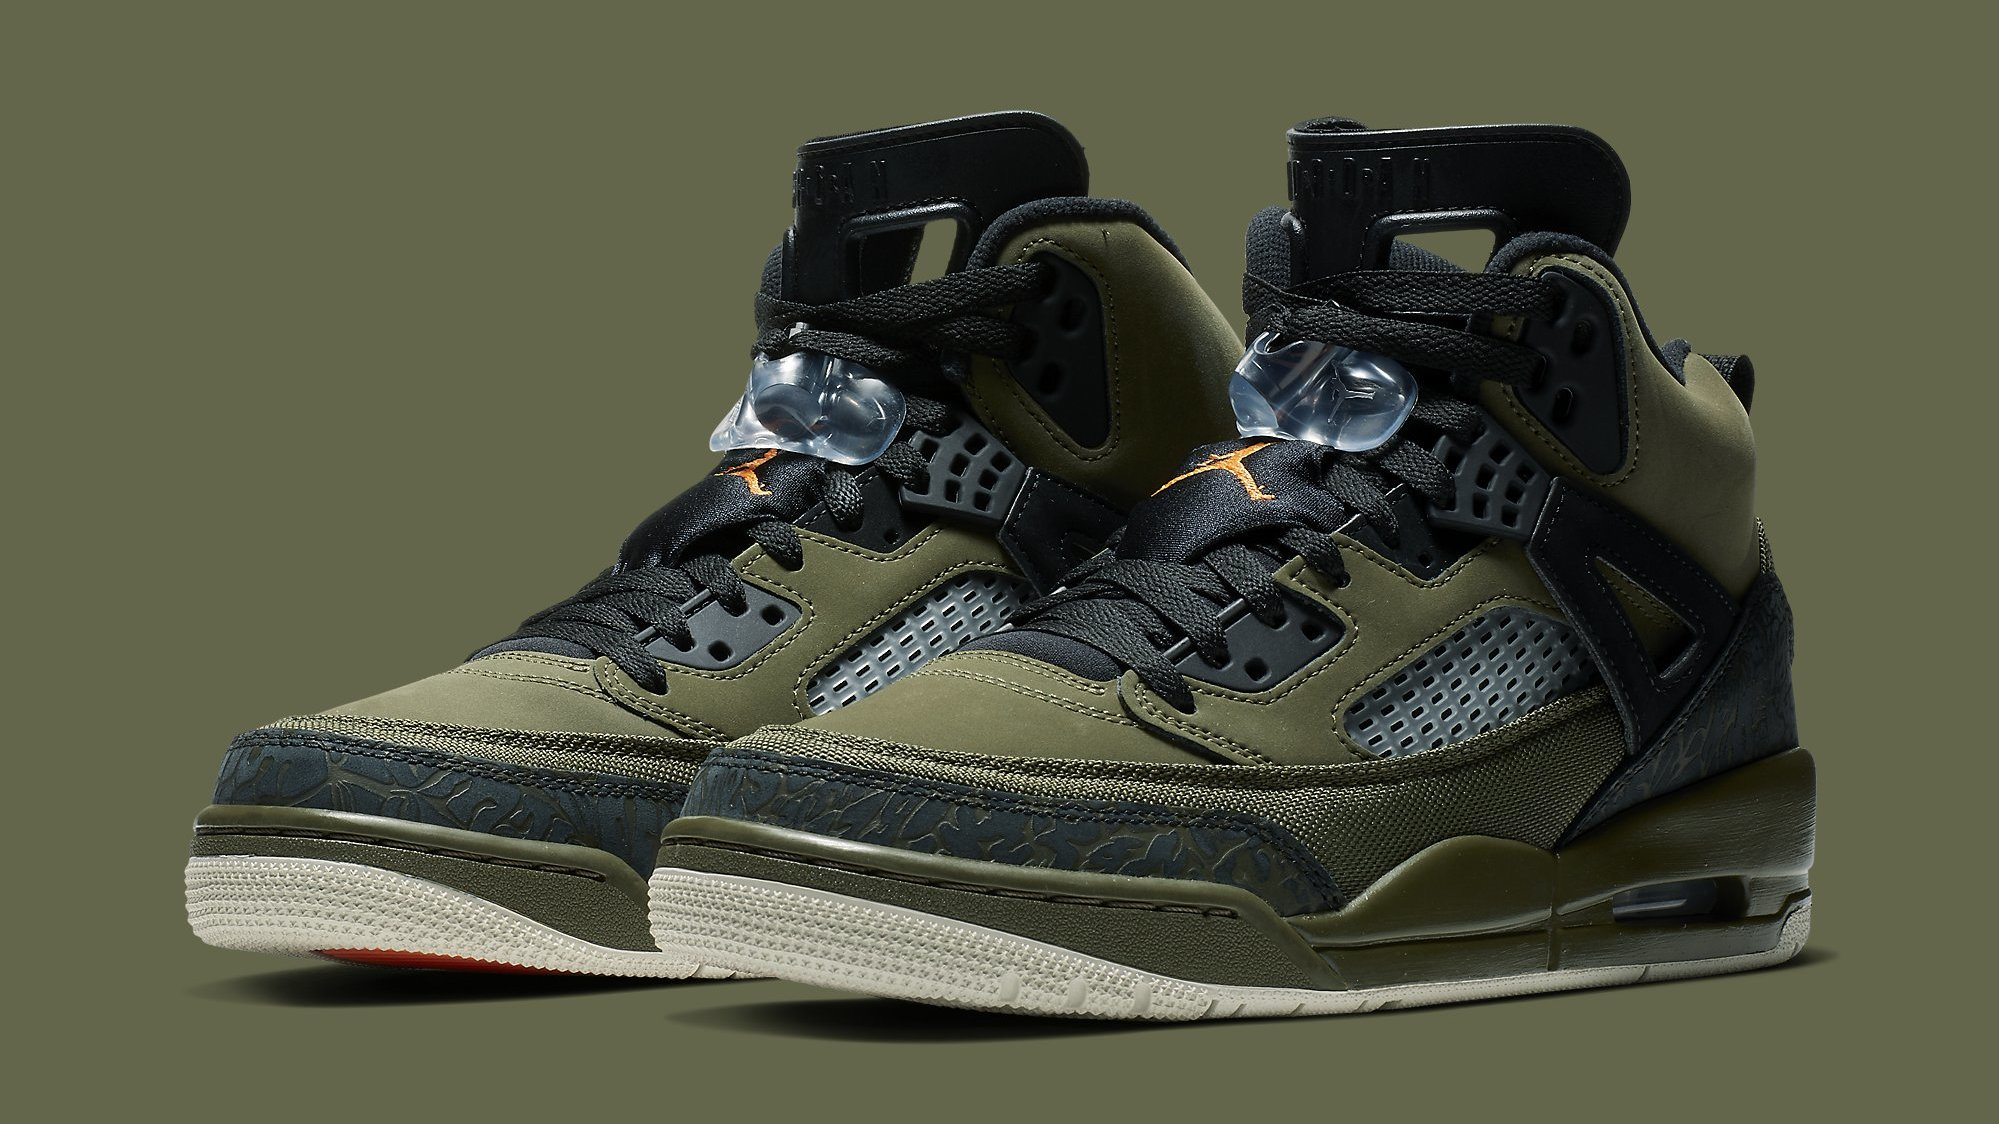 Undefeated-Inspired Jordan Spizikes Are Coming Soon